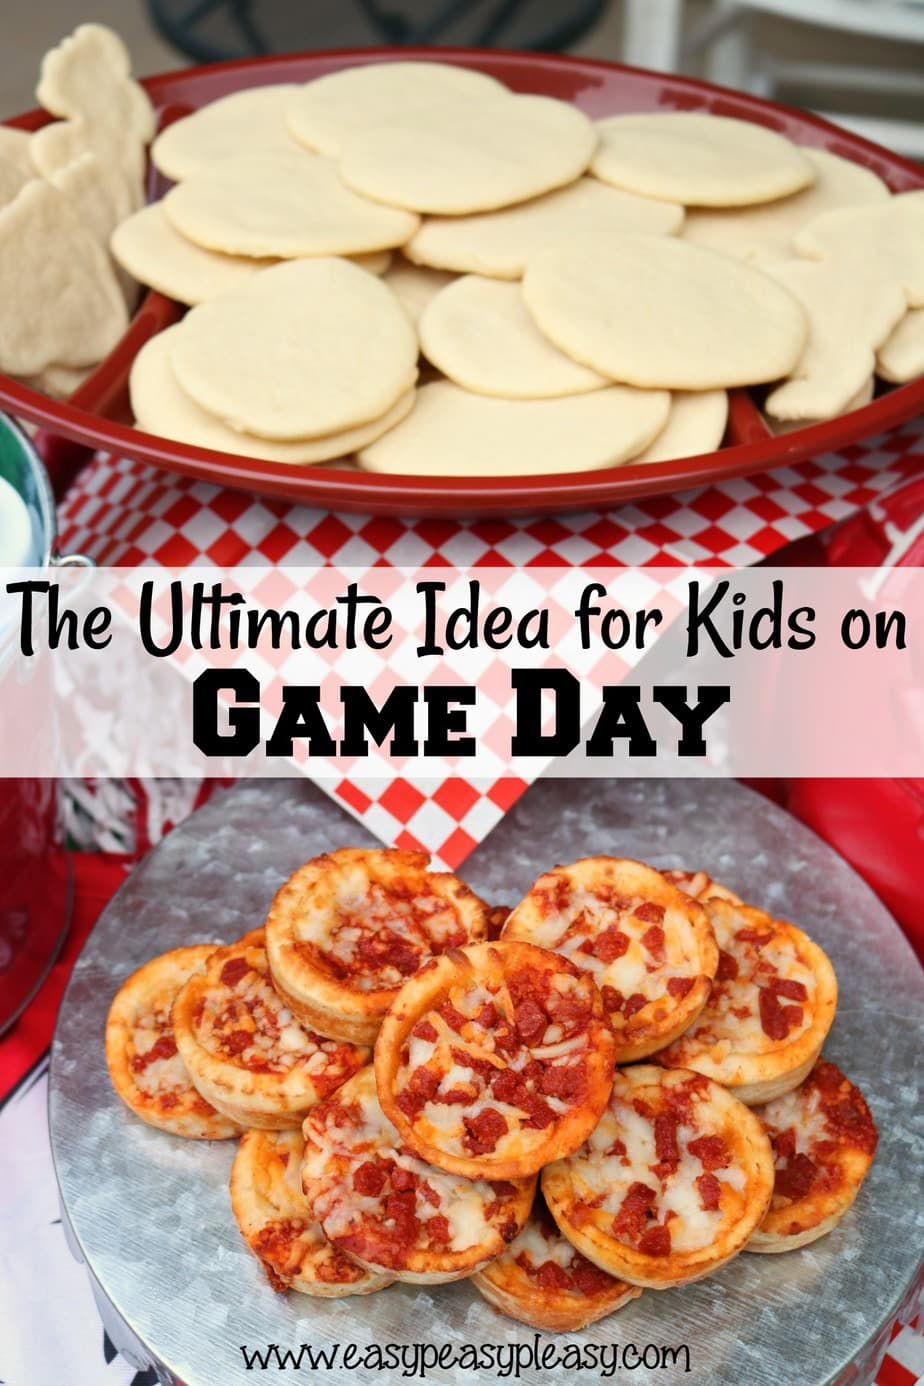 Check out the ultimate idea for kids on game day with this winning combo!